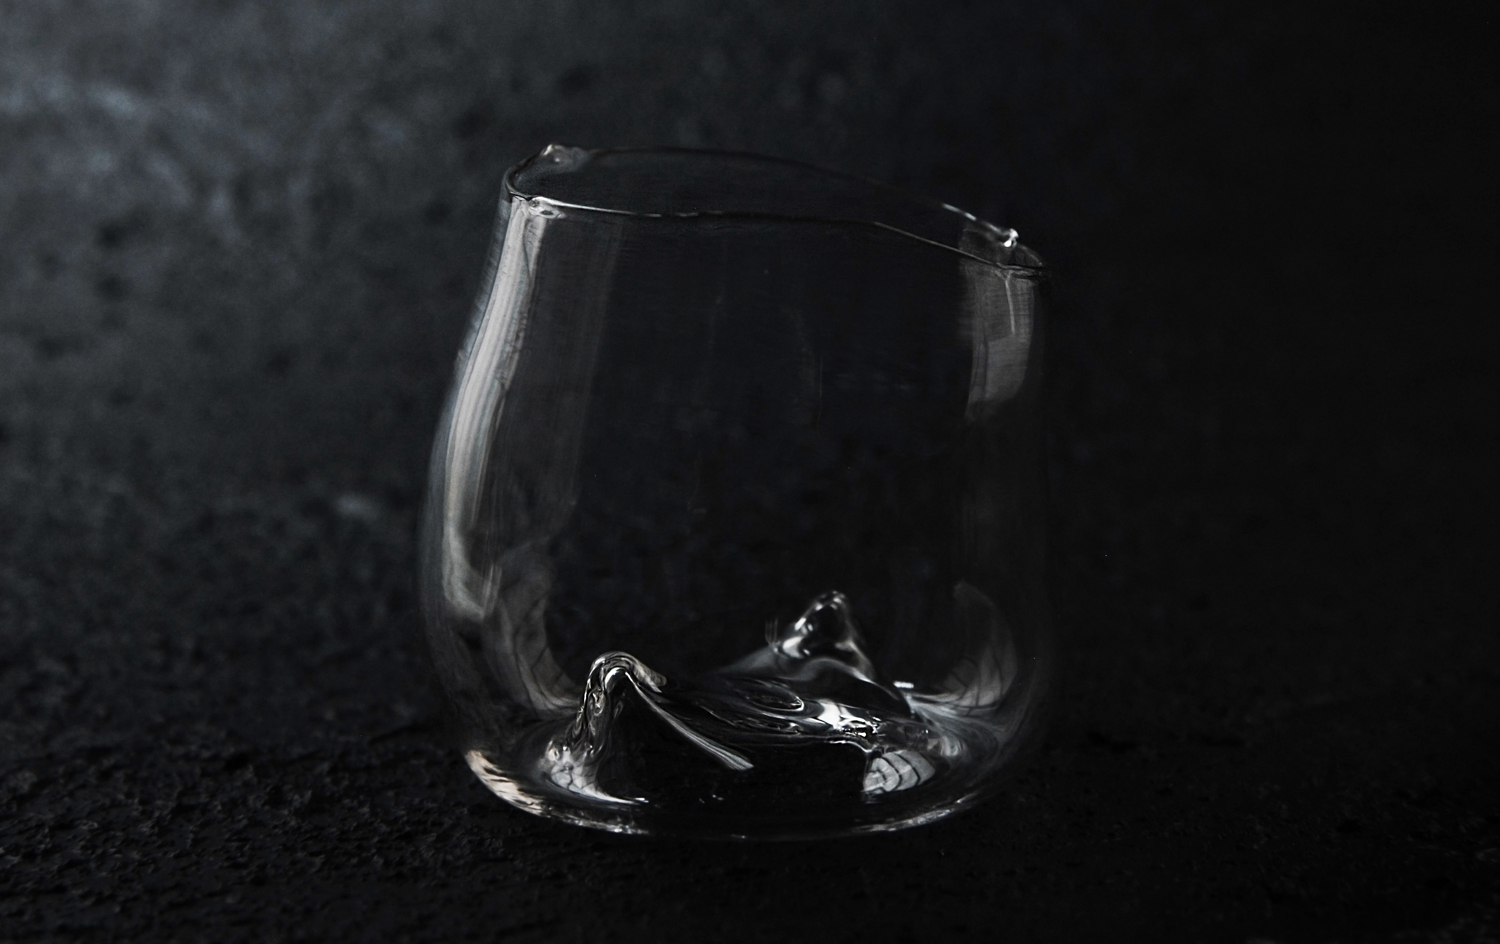 gently guided glass flows into forms that harmonize with the movement of the contained liquid